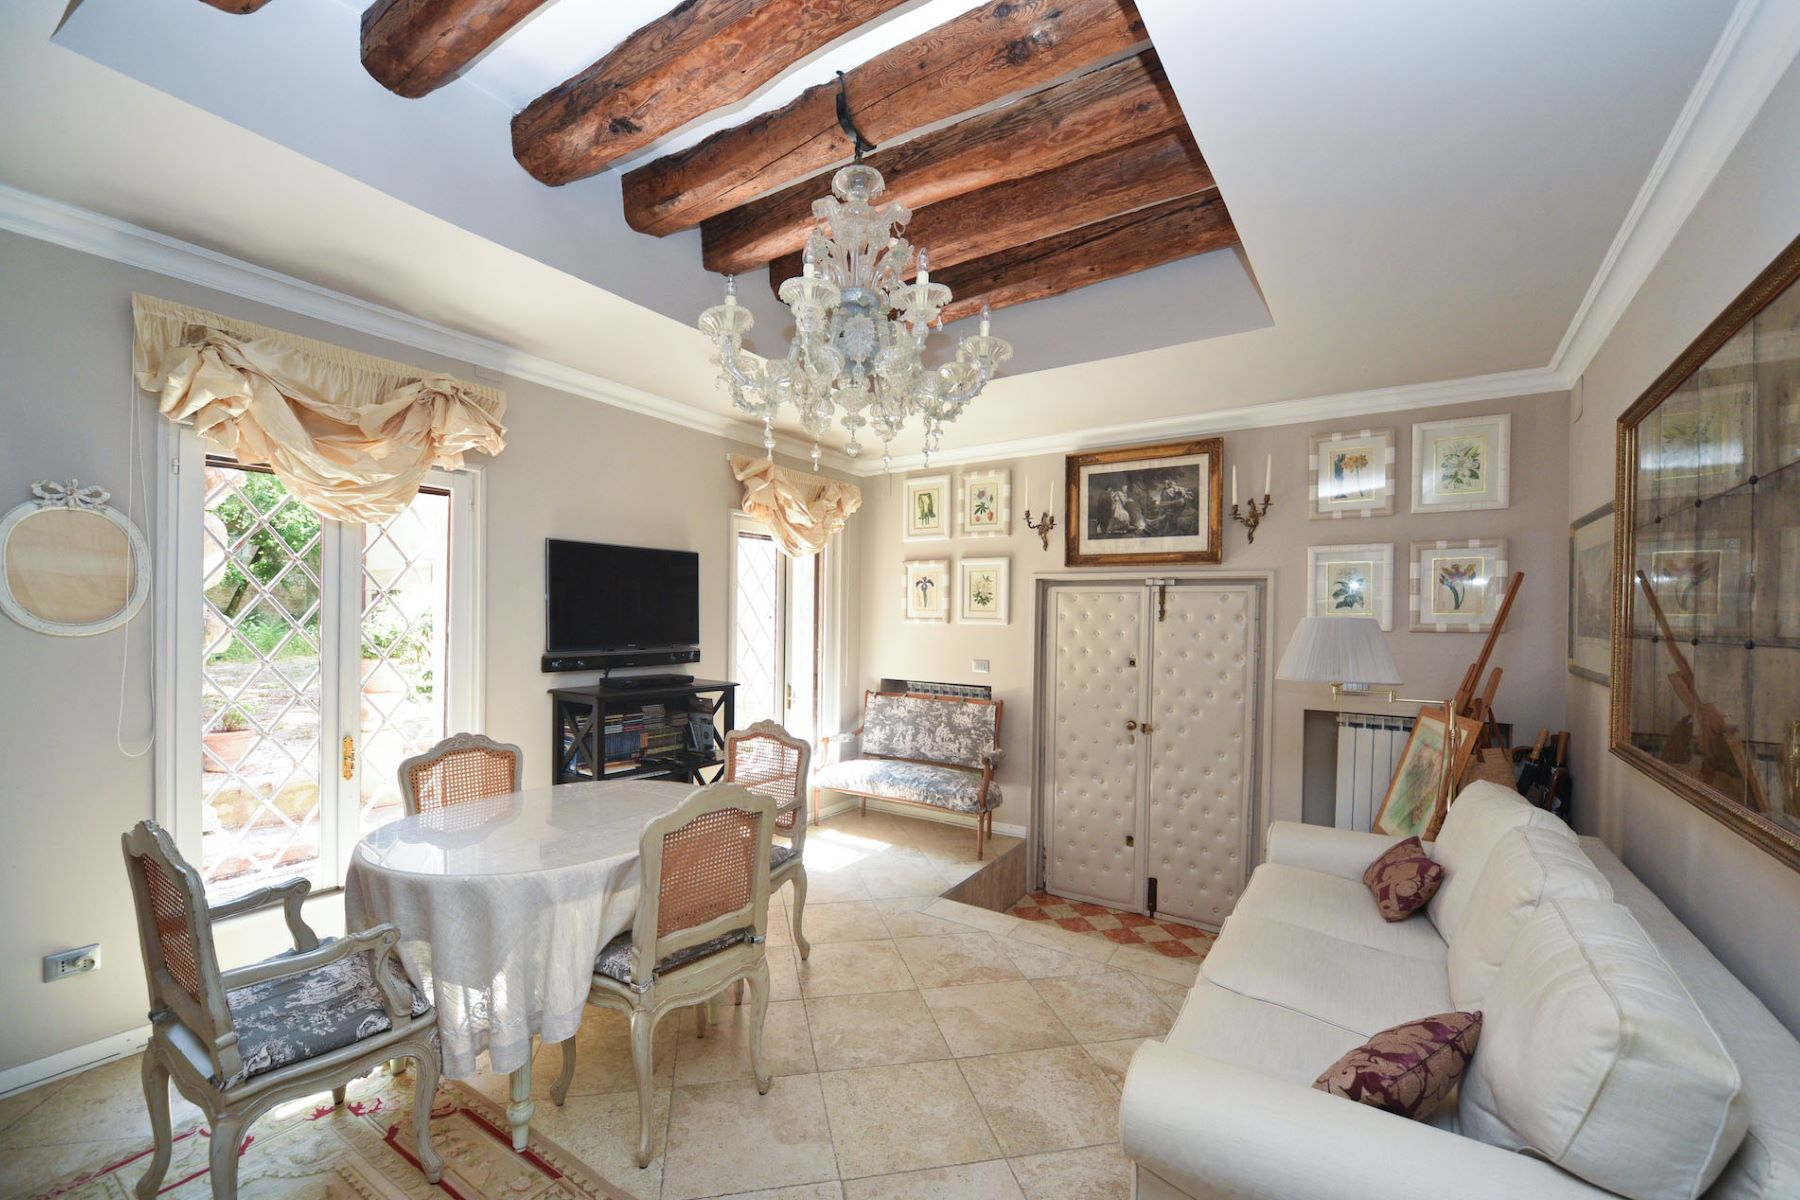 Single Family Homes for Sale at Pied a Terre Grand Canal Palazzo San Marco 3901/A S. MARCO Venice, Venice 30124 Italy